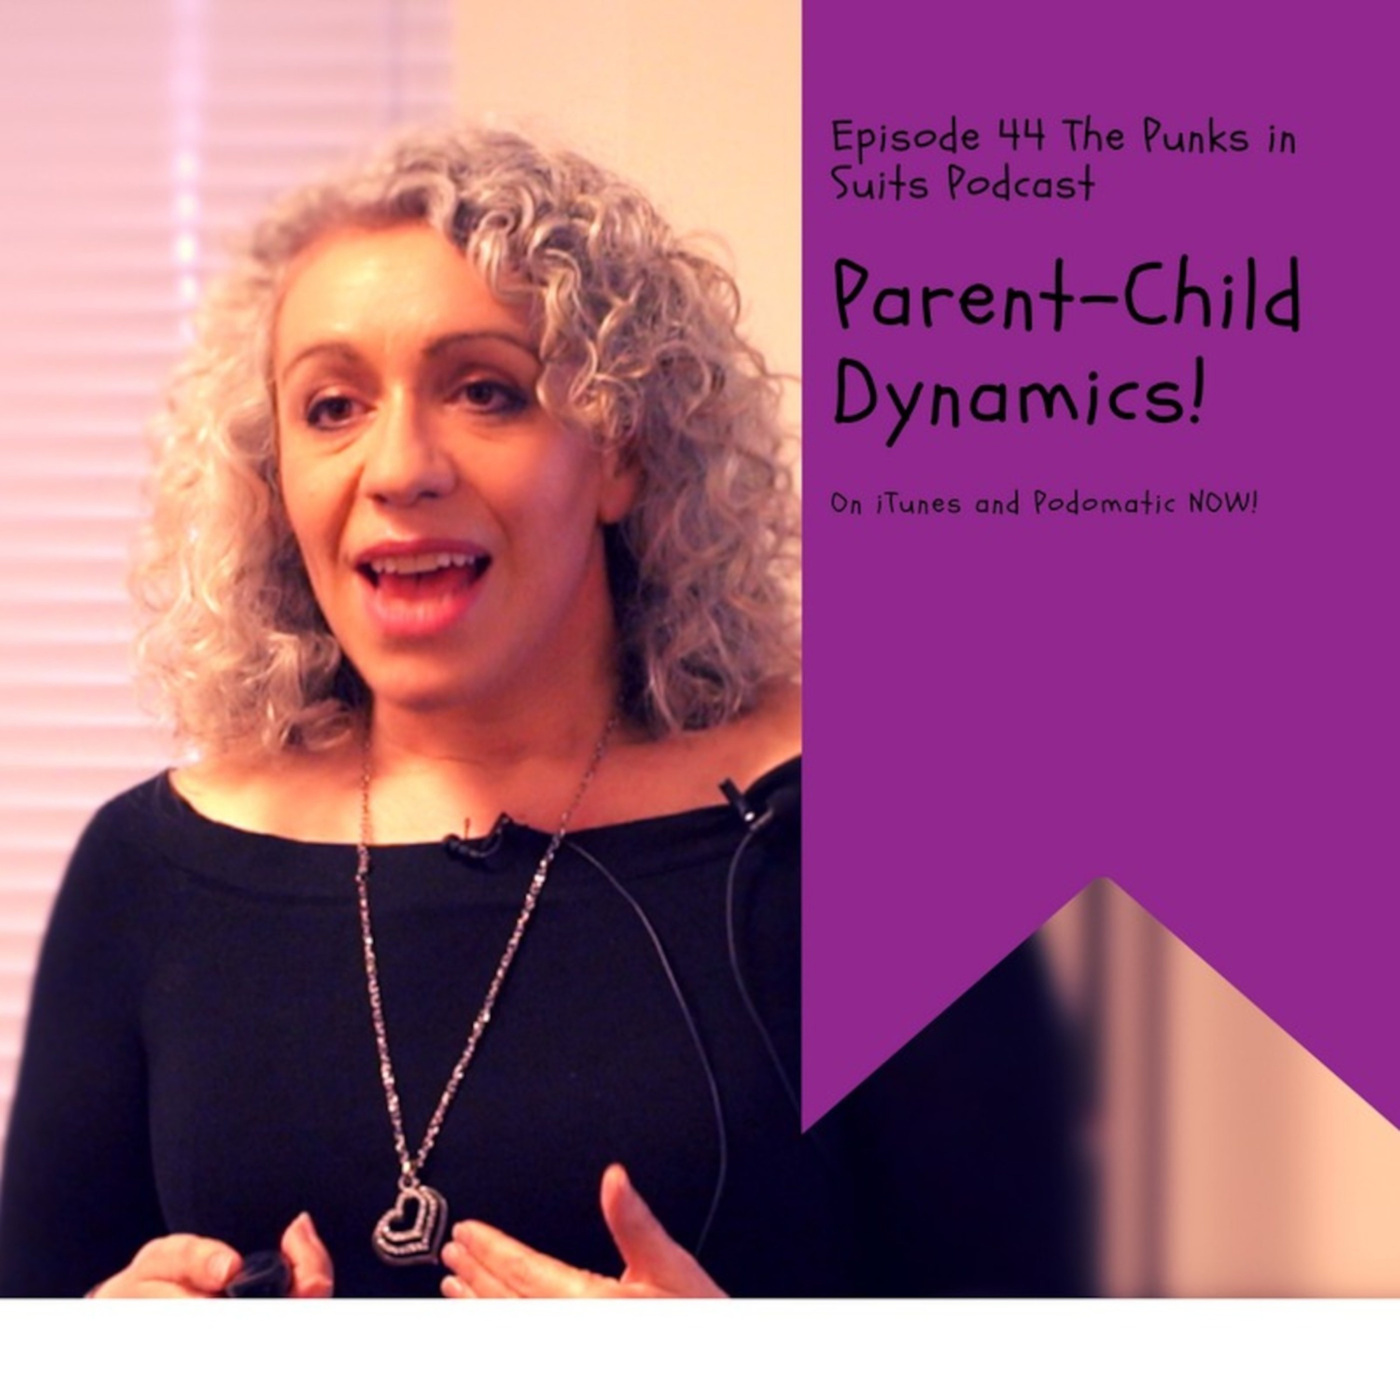 Episode 44: Parent-Child Dynamics